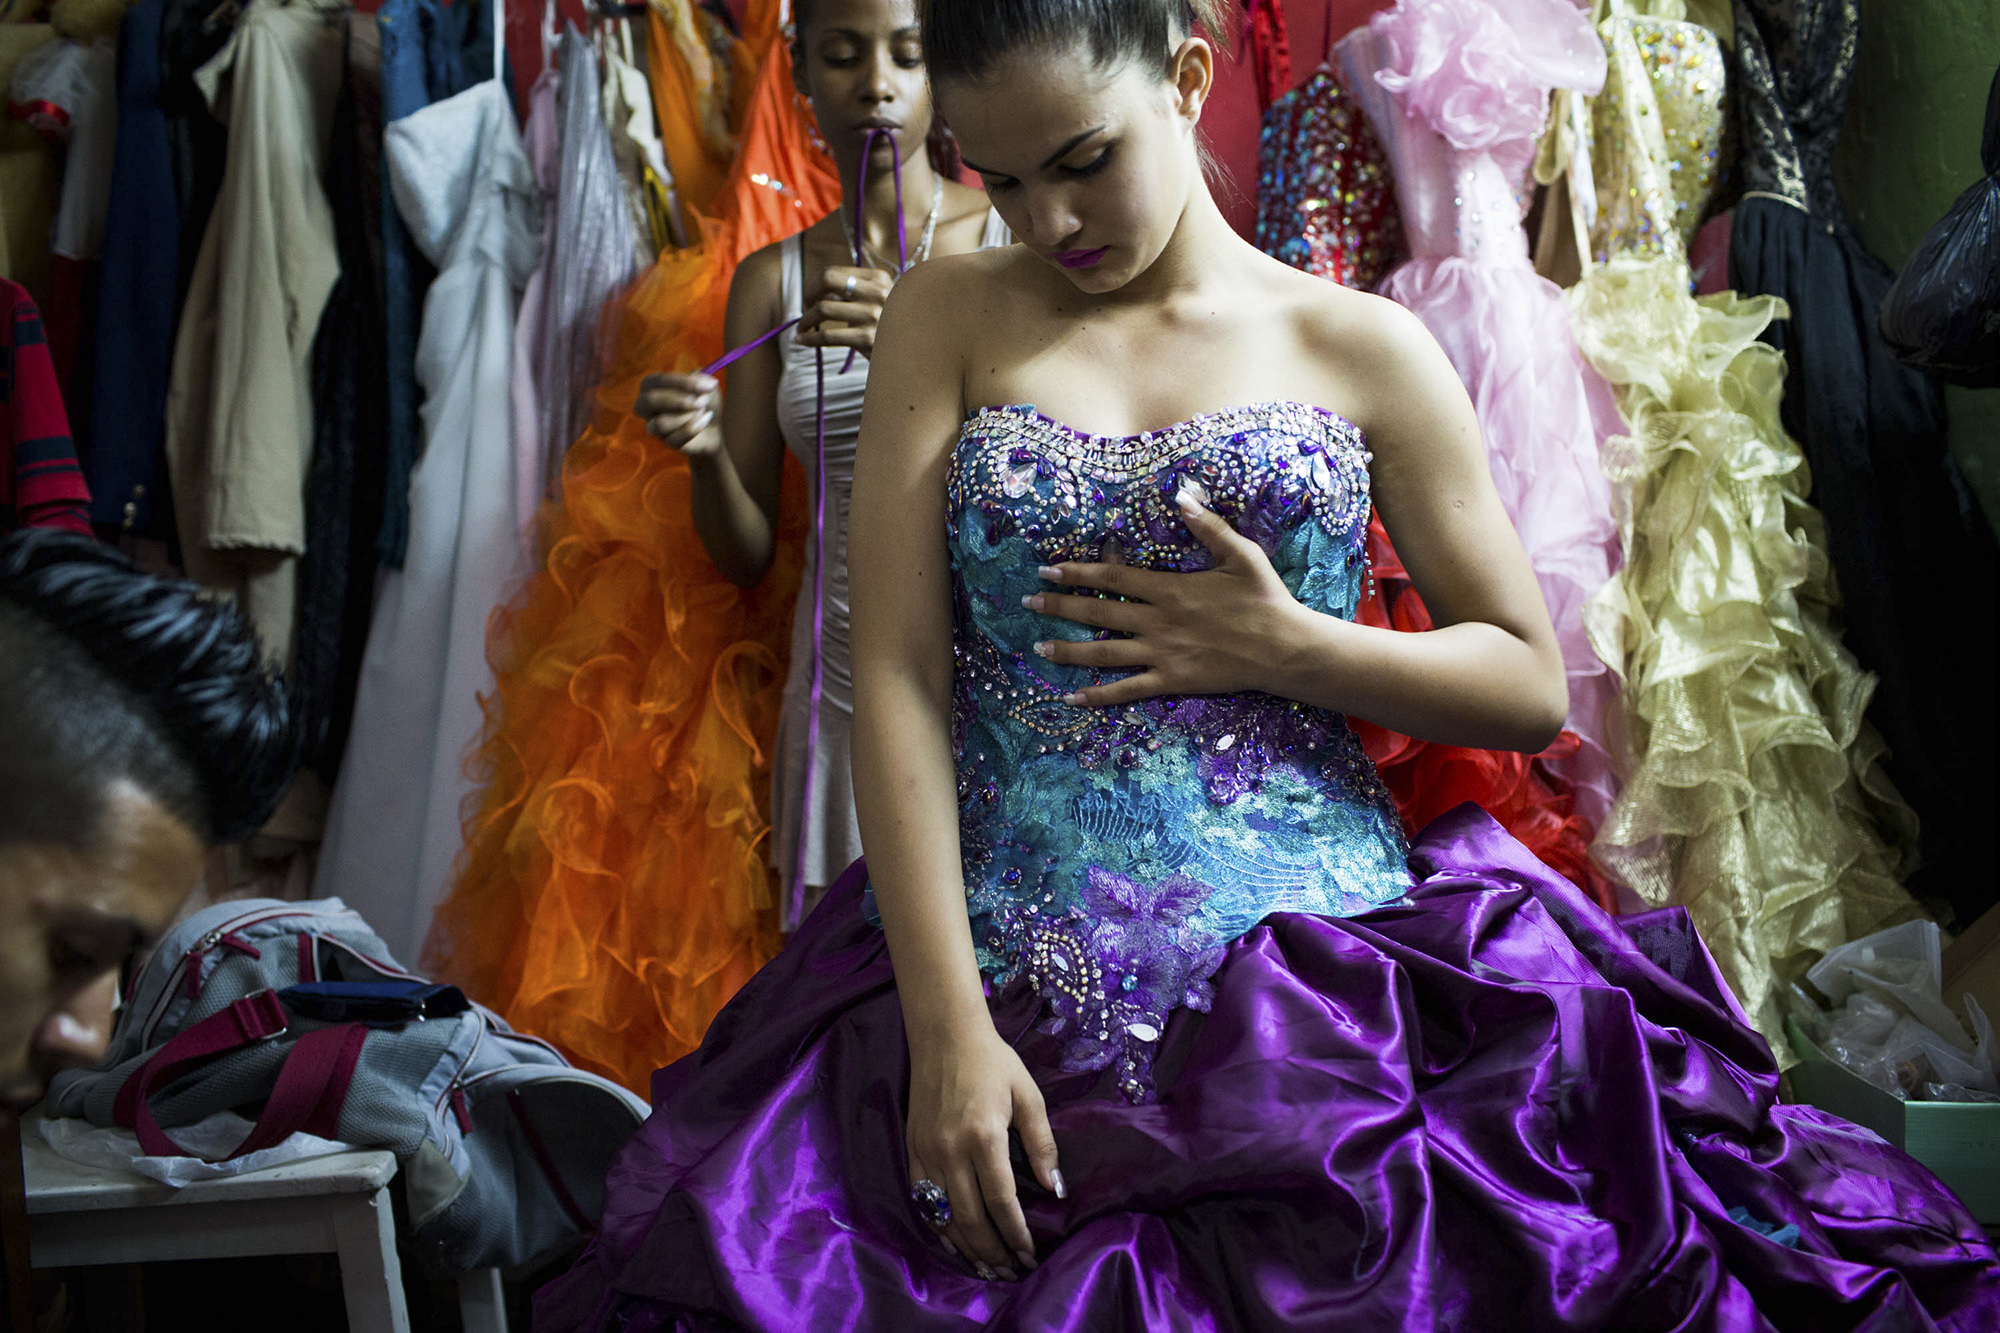 origins of quinceanera essay Quinceanera cerebrations history is mainly found in the aztec and mayan cultures of the latin american people with the roots in the ancient mexican society a girl approaching her fifteenth birthday would be taken from her home to be prepared on how to transcend from girlhood to womanhood and marriage.